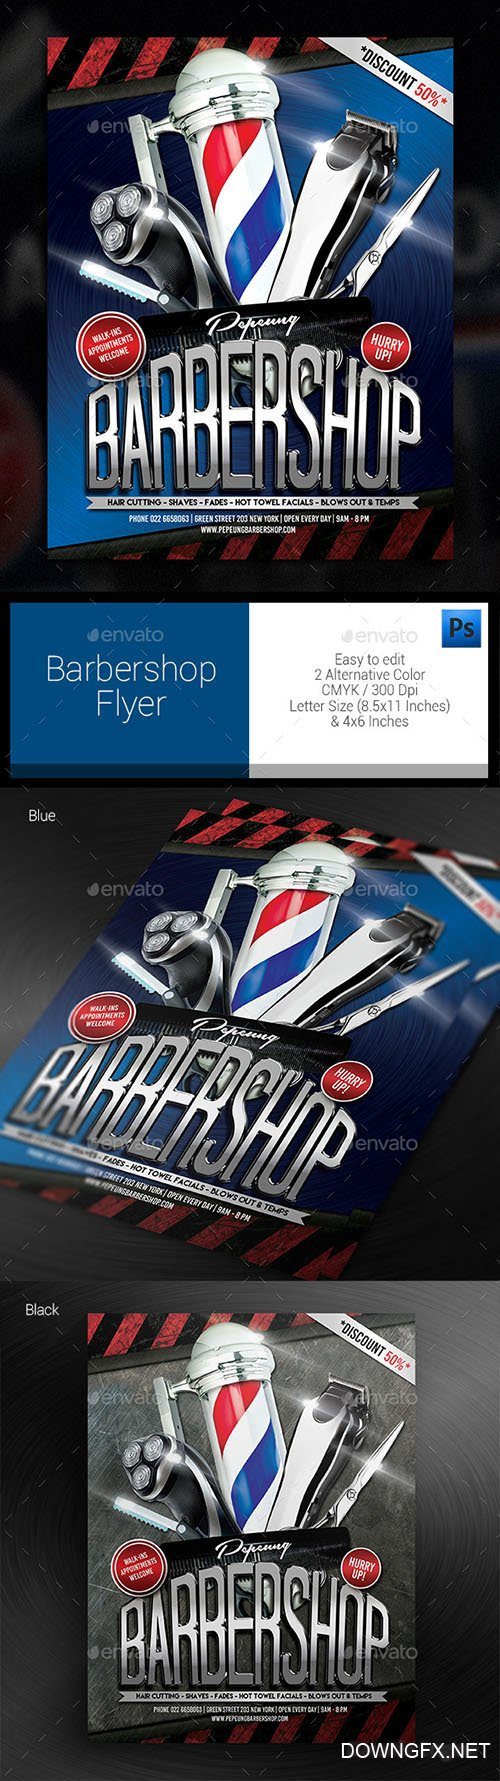 Barbershop Flyer 12001733